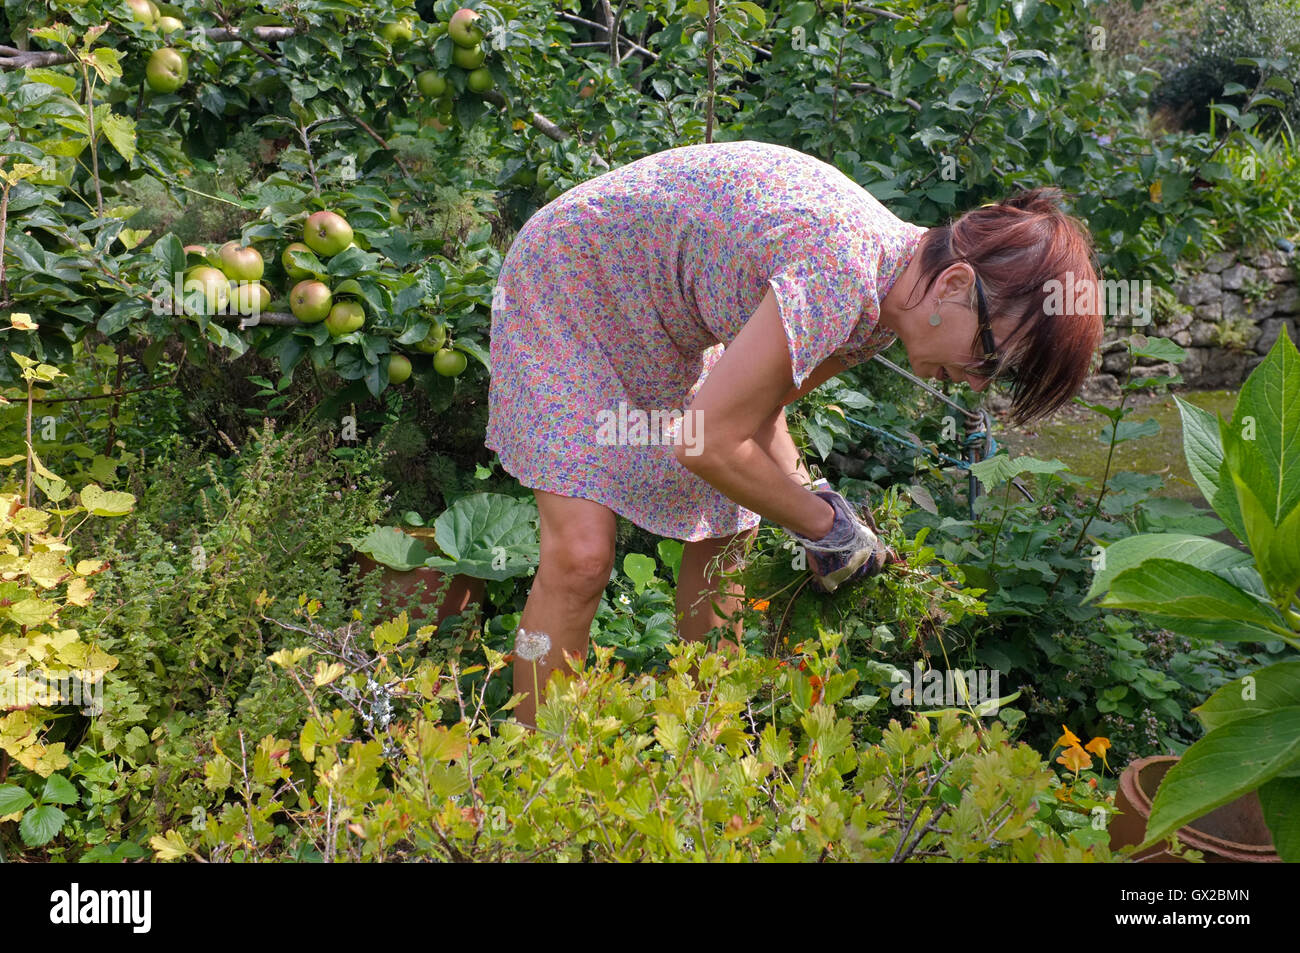 A woman trying to clear an overgrown garden - Stock Image